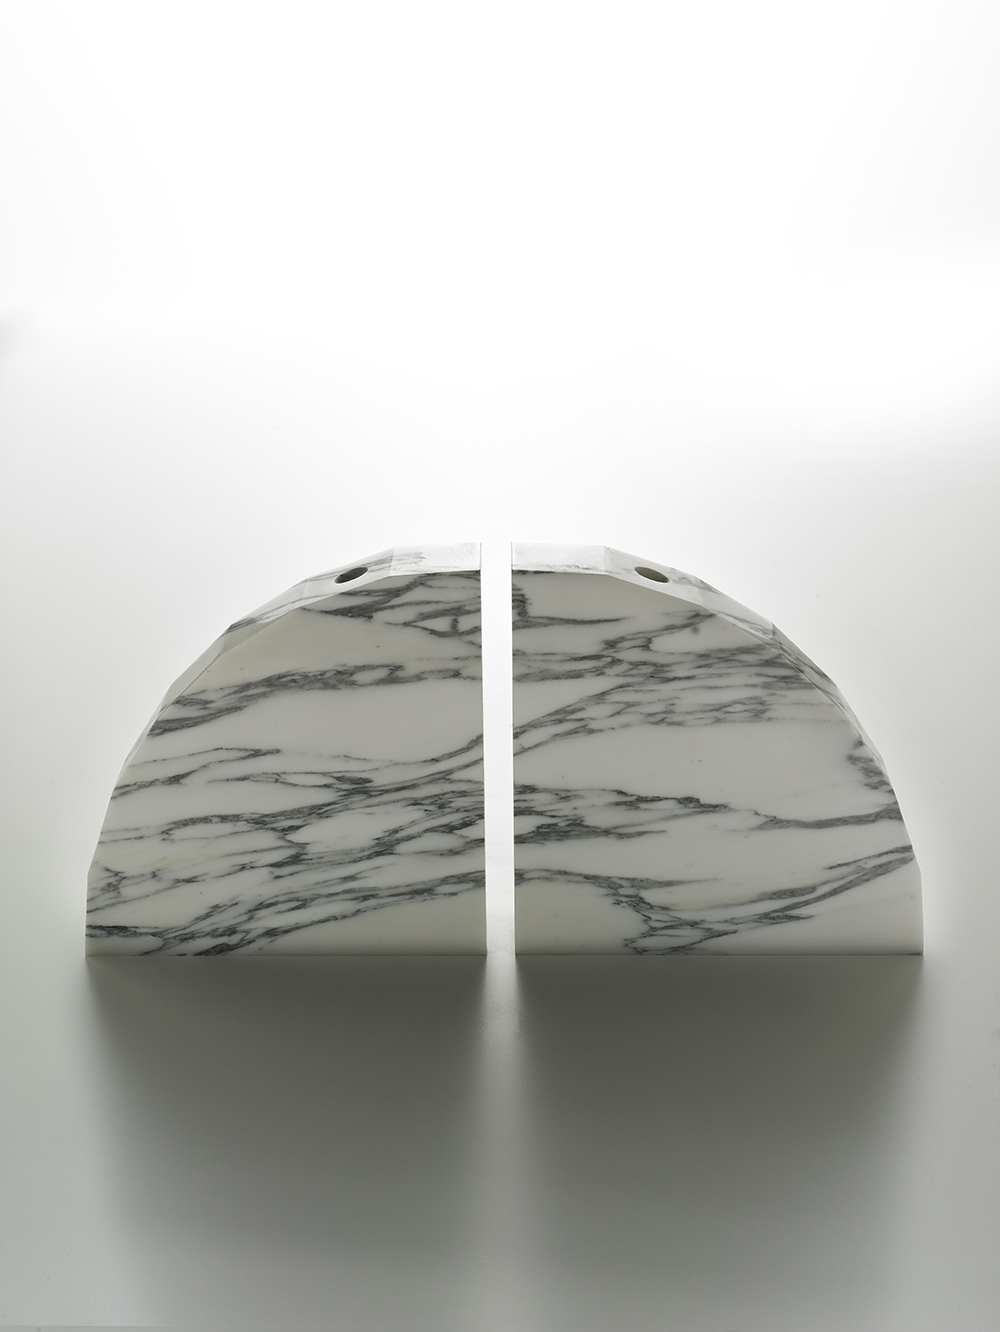 Brooksbank & Collins_Caulis_Arabascatta Marble_9